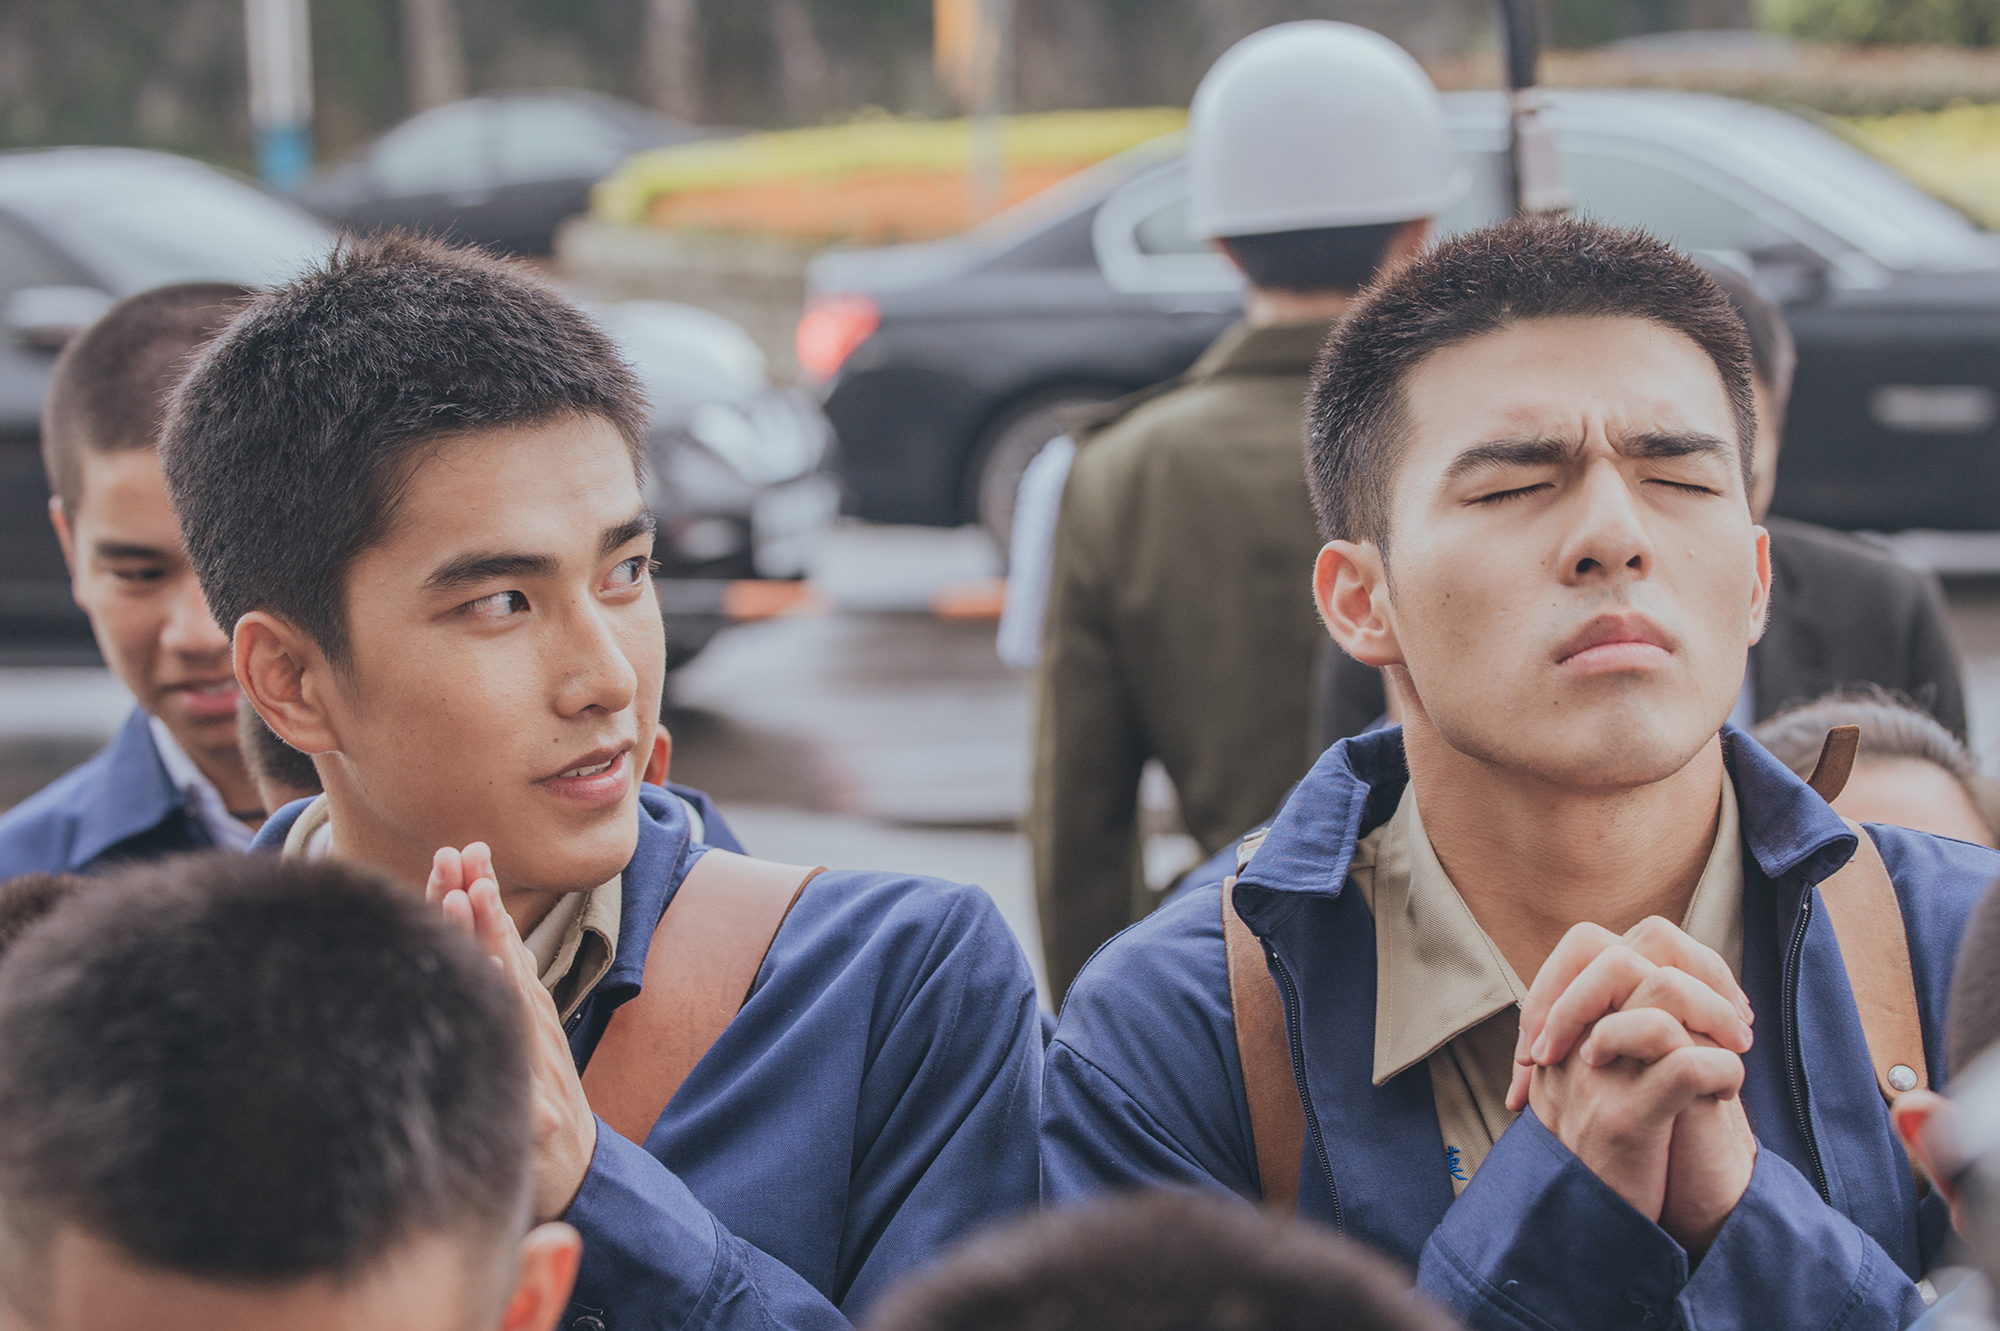 Taiwanese Gay Drama 'Your Name Engraved Herein' On Netflix Is Worth A Watch